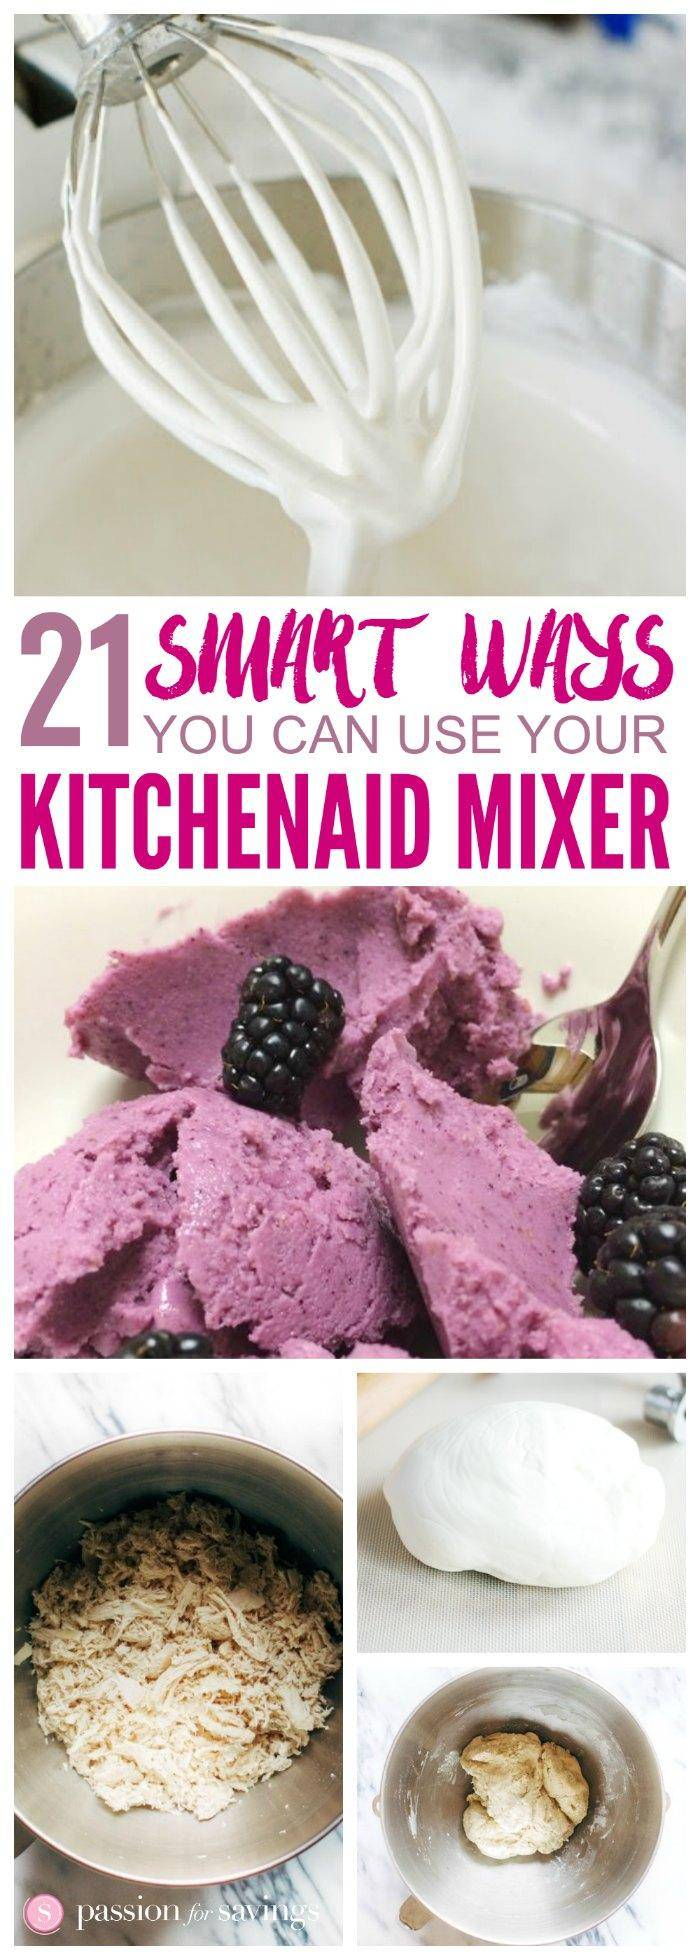 These 21 Smart Ways to Use Your KitchenAid Mixer are great if you're a new KitchenAid Owner, or just looking for new ways to use yours!